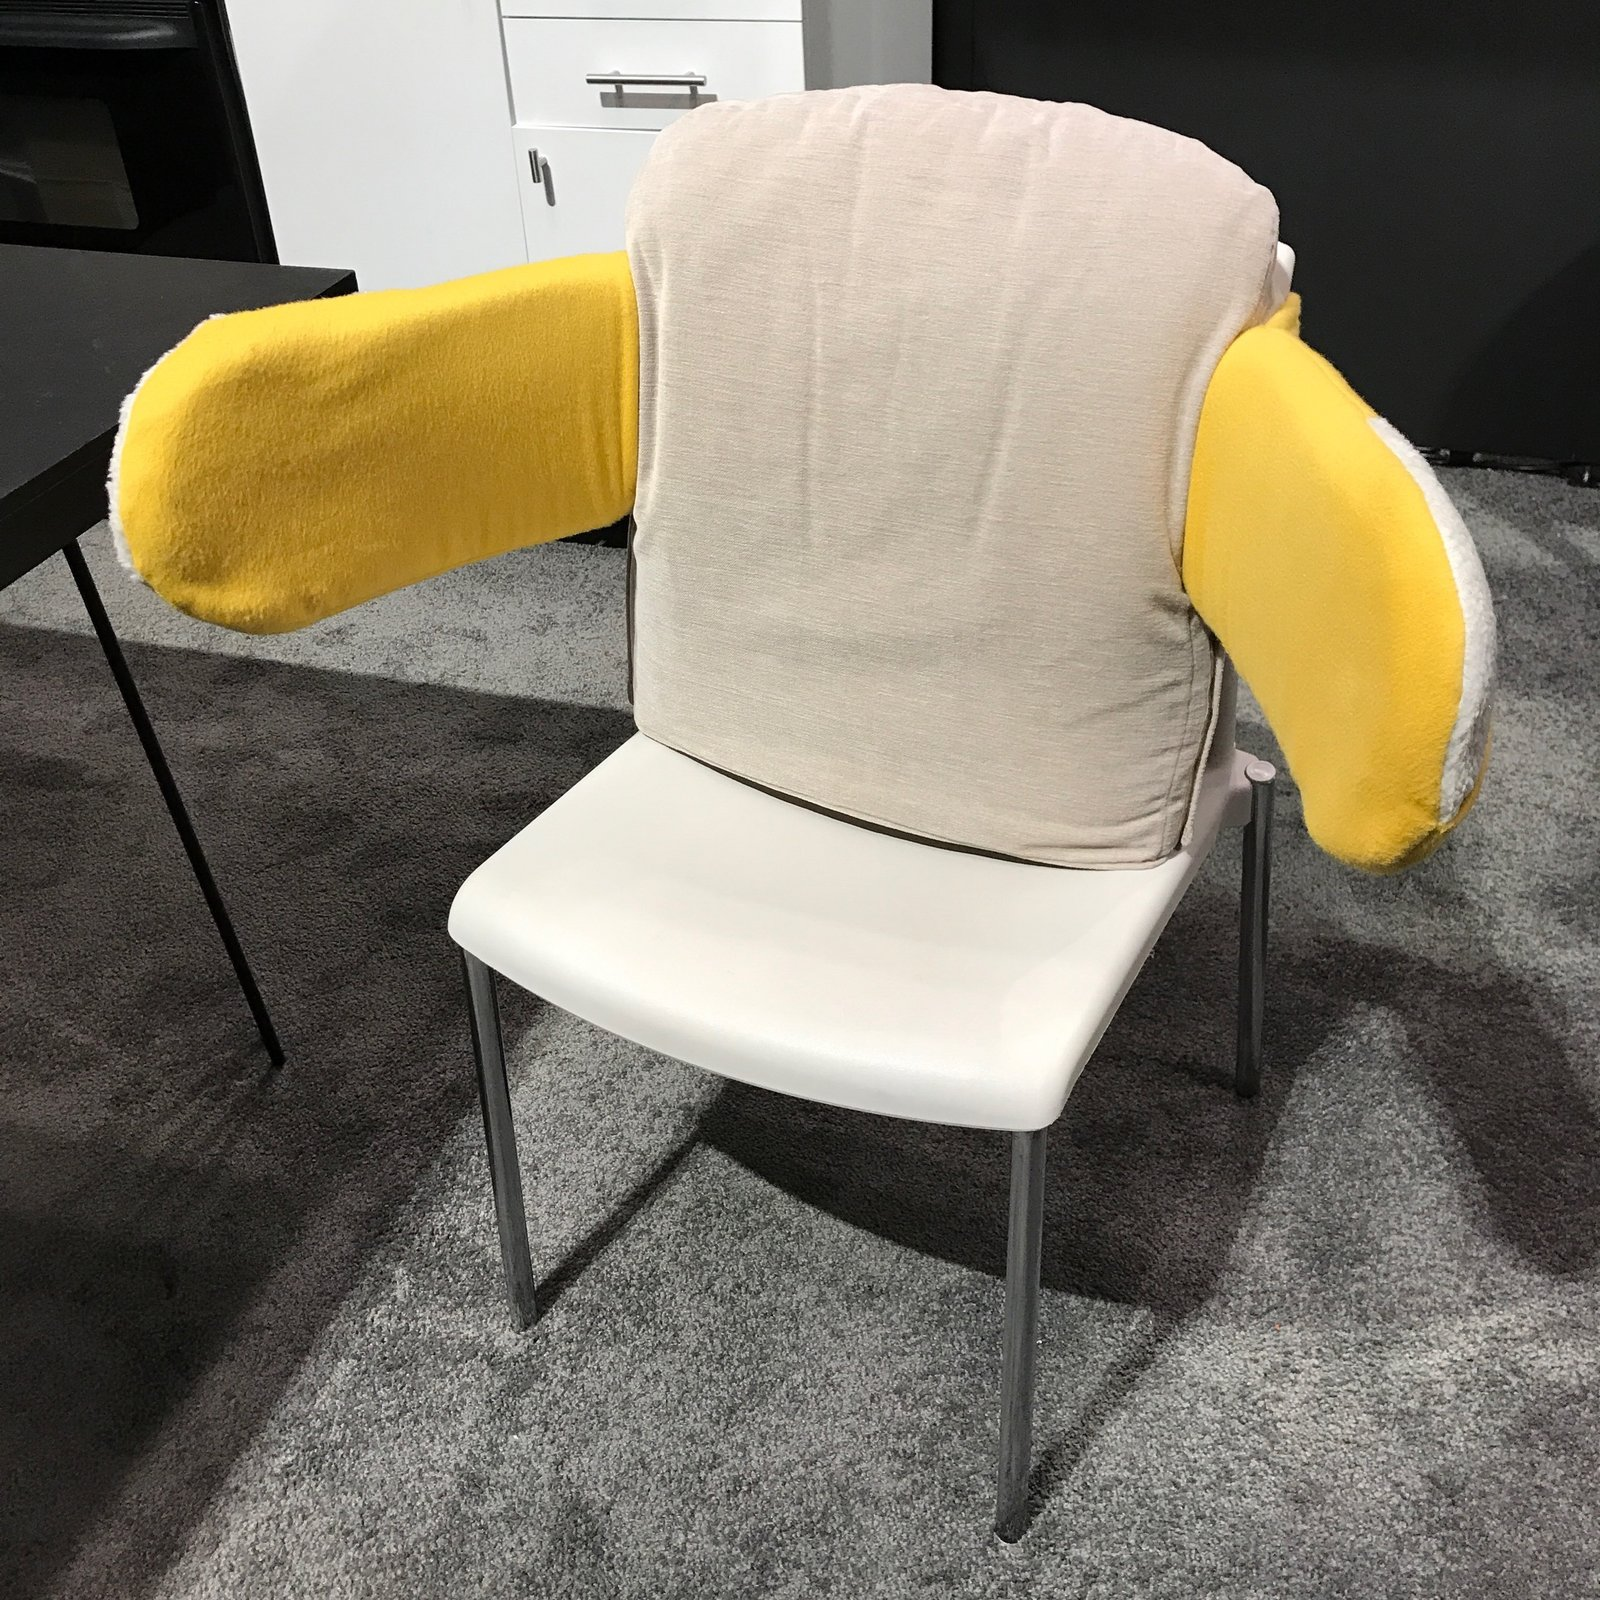 The Hug Chair is a prototype seating piece for Alzheimer's patients, introduced at part of Pratt's installation at ICFF entitled Designed for the Mind. It was created by Nick Petcharatana. The Best of New York Design Week 2017 - Photo 32 of 36